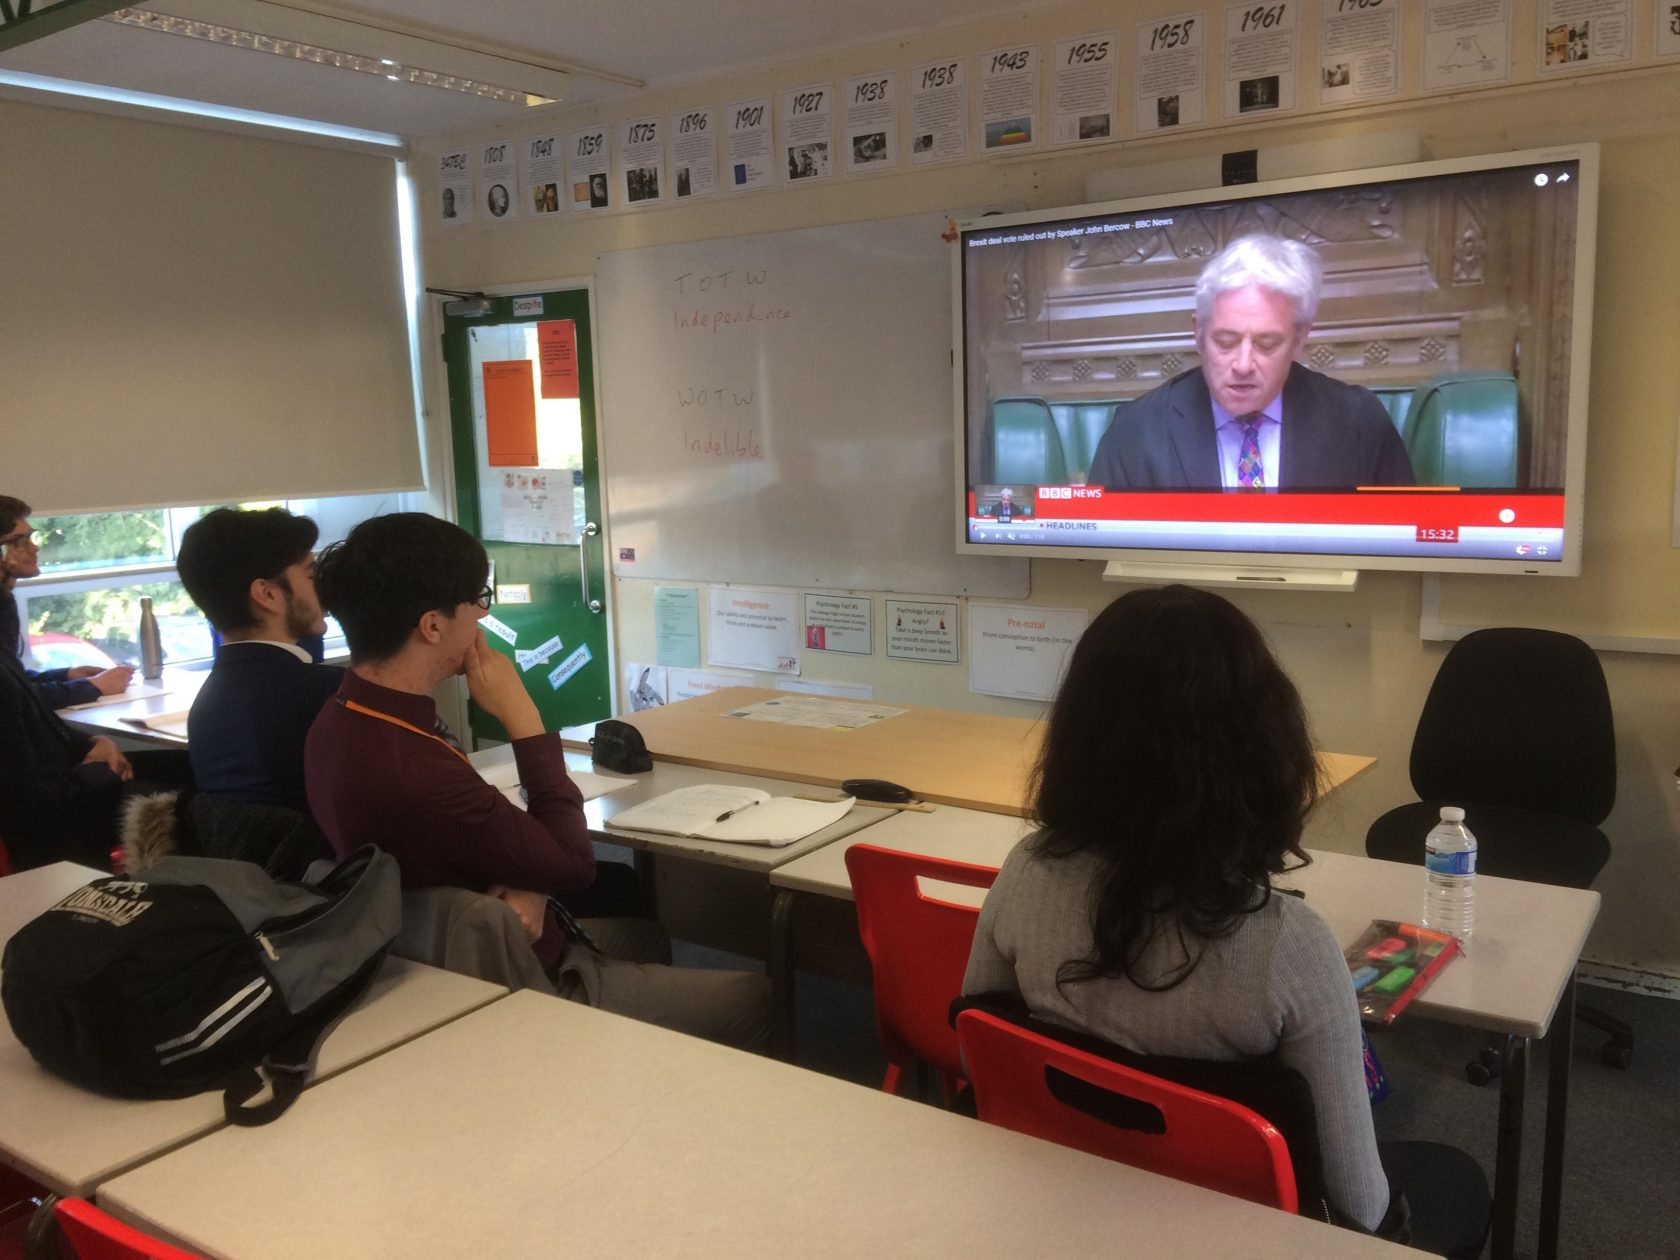 Government and Politics at Bushey Meads School: BREXIT FOCUS